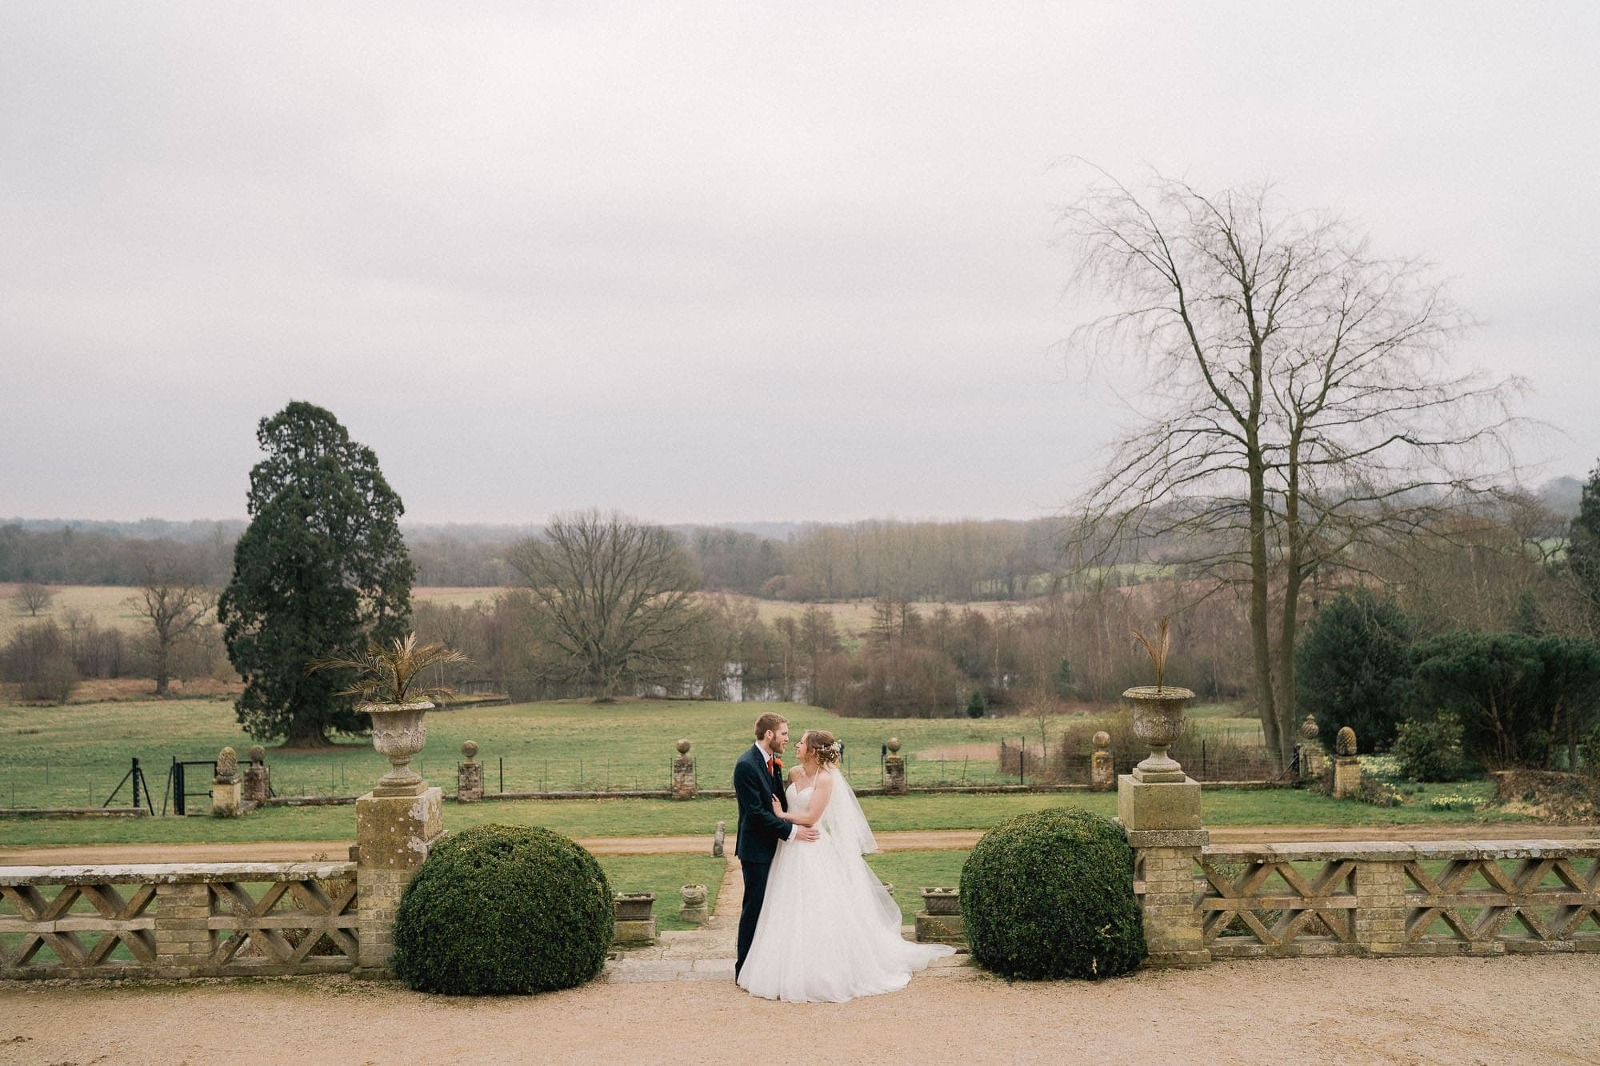 Buxted Park Wedding Venue in Sussex